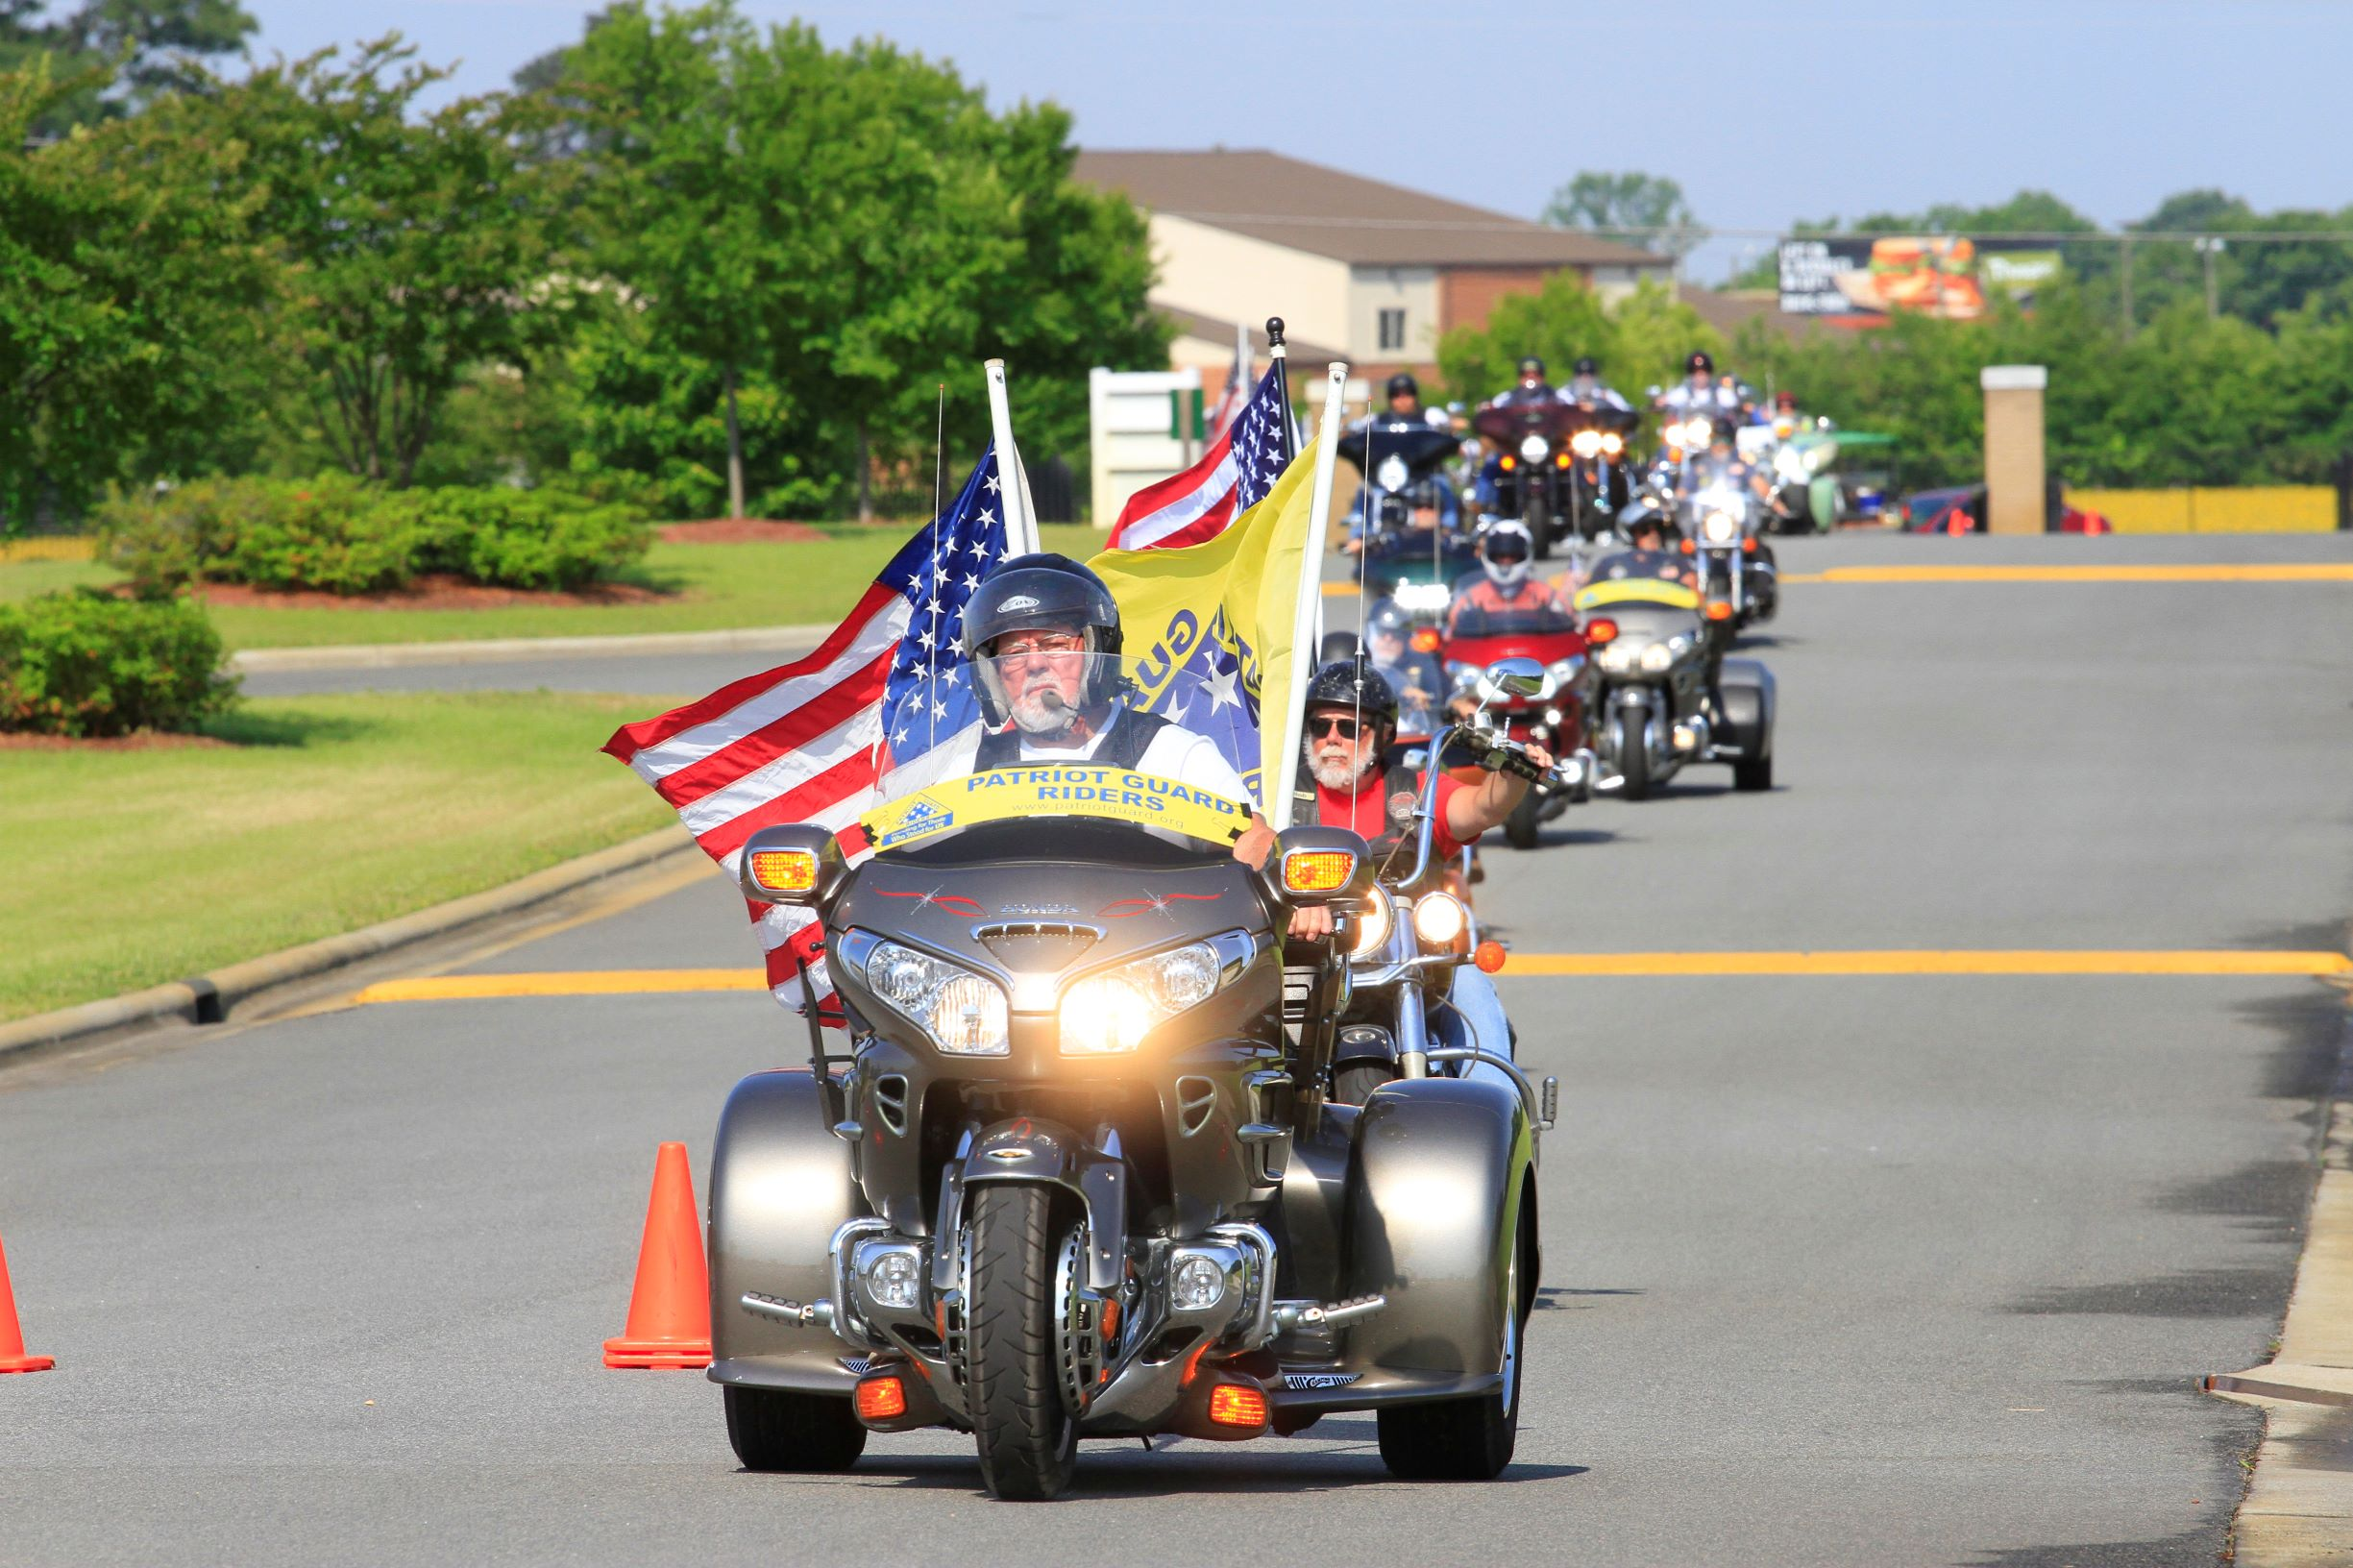 Patriot Guard Riders Accompany USAF Veteran To Final Resting Place (PHOTOS)